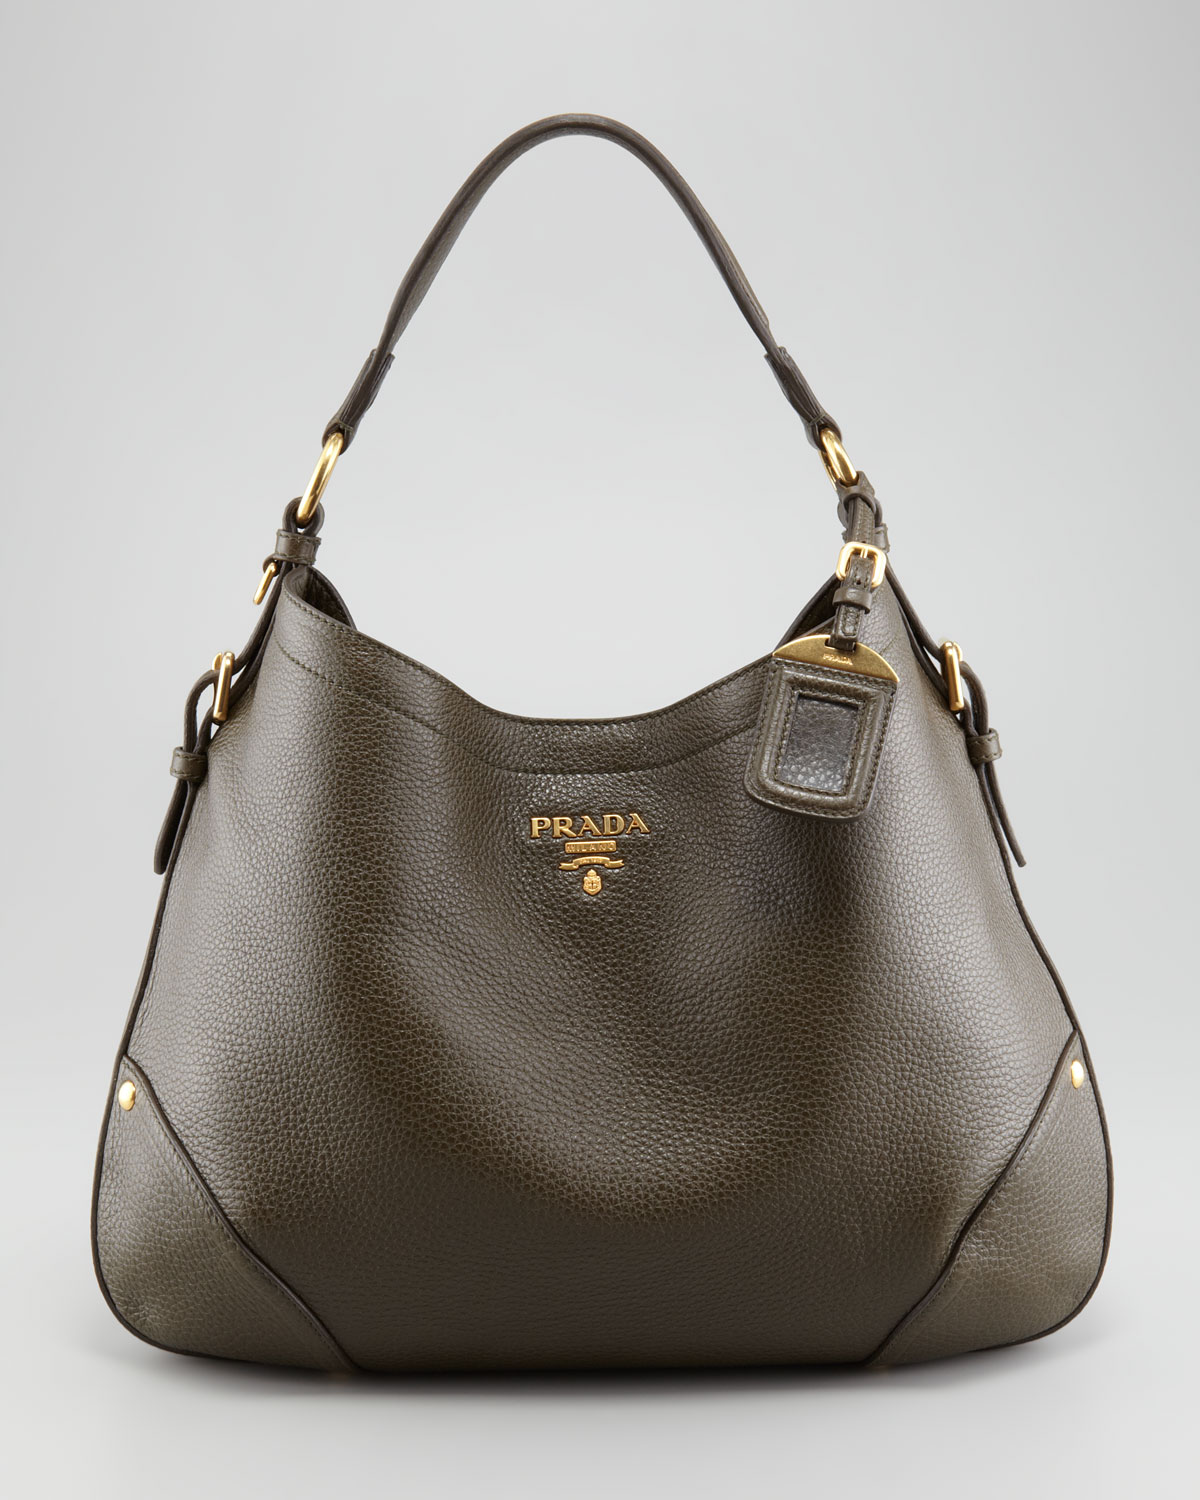 Prada Vitello Daino Snap Hobo Bag in Brown (mltre) | Lyst